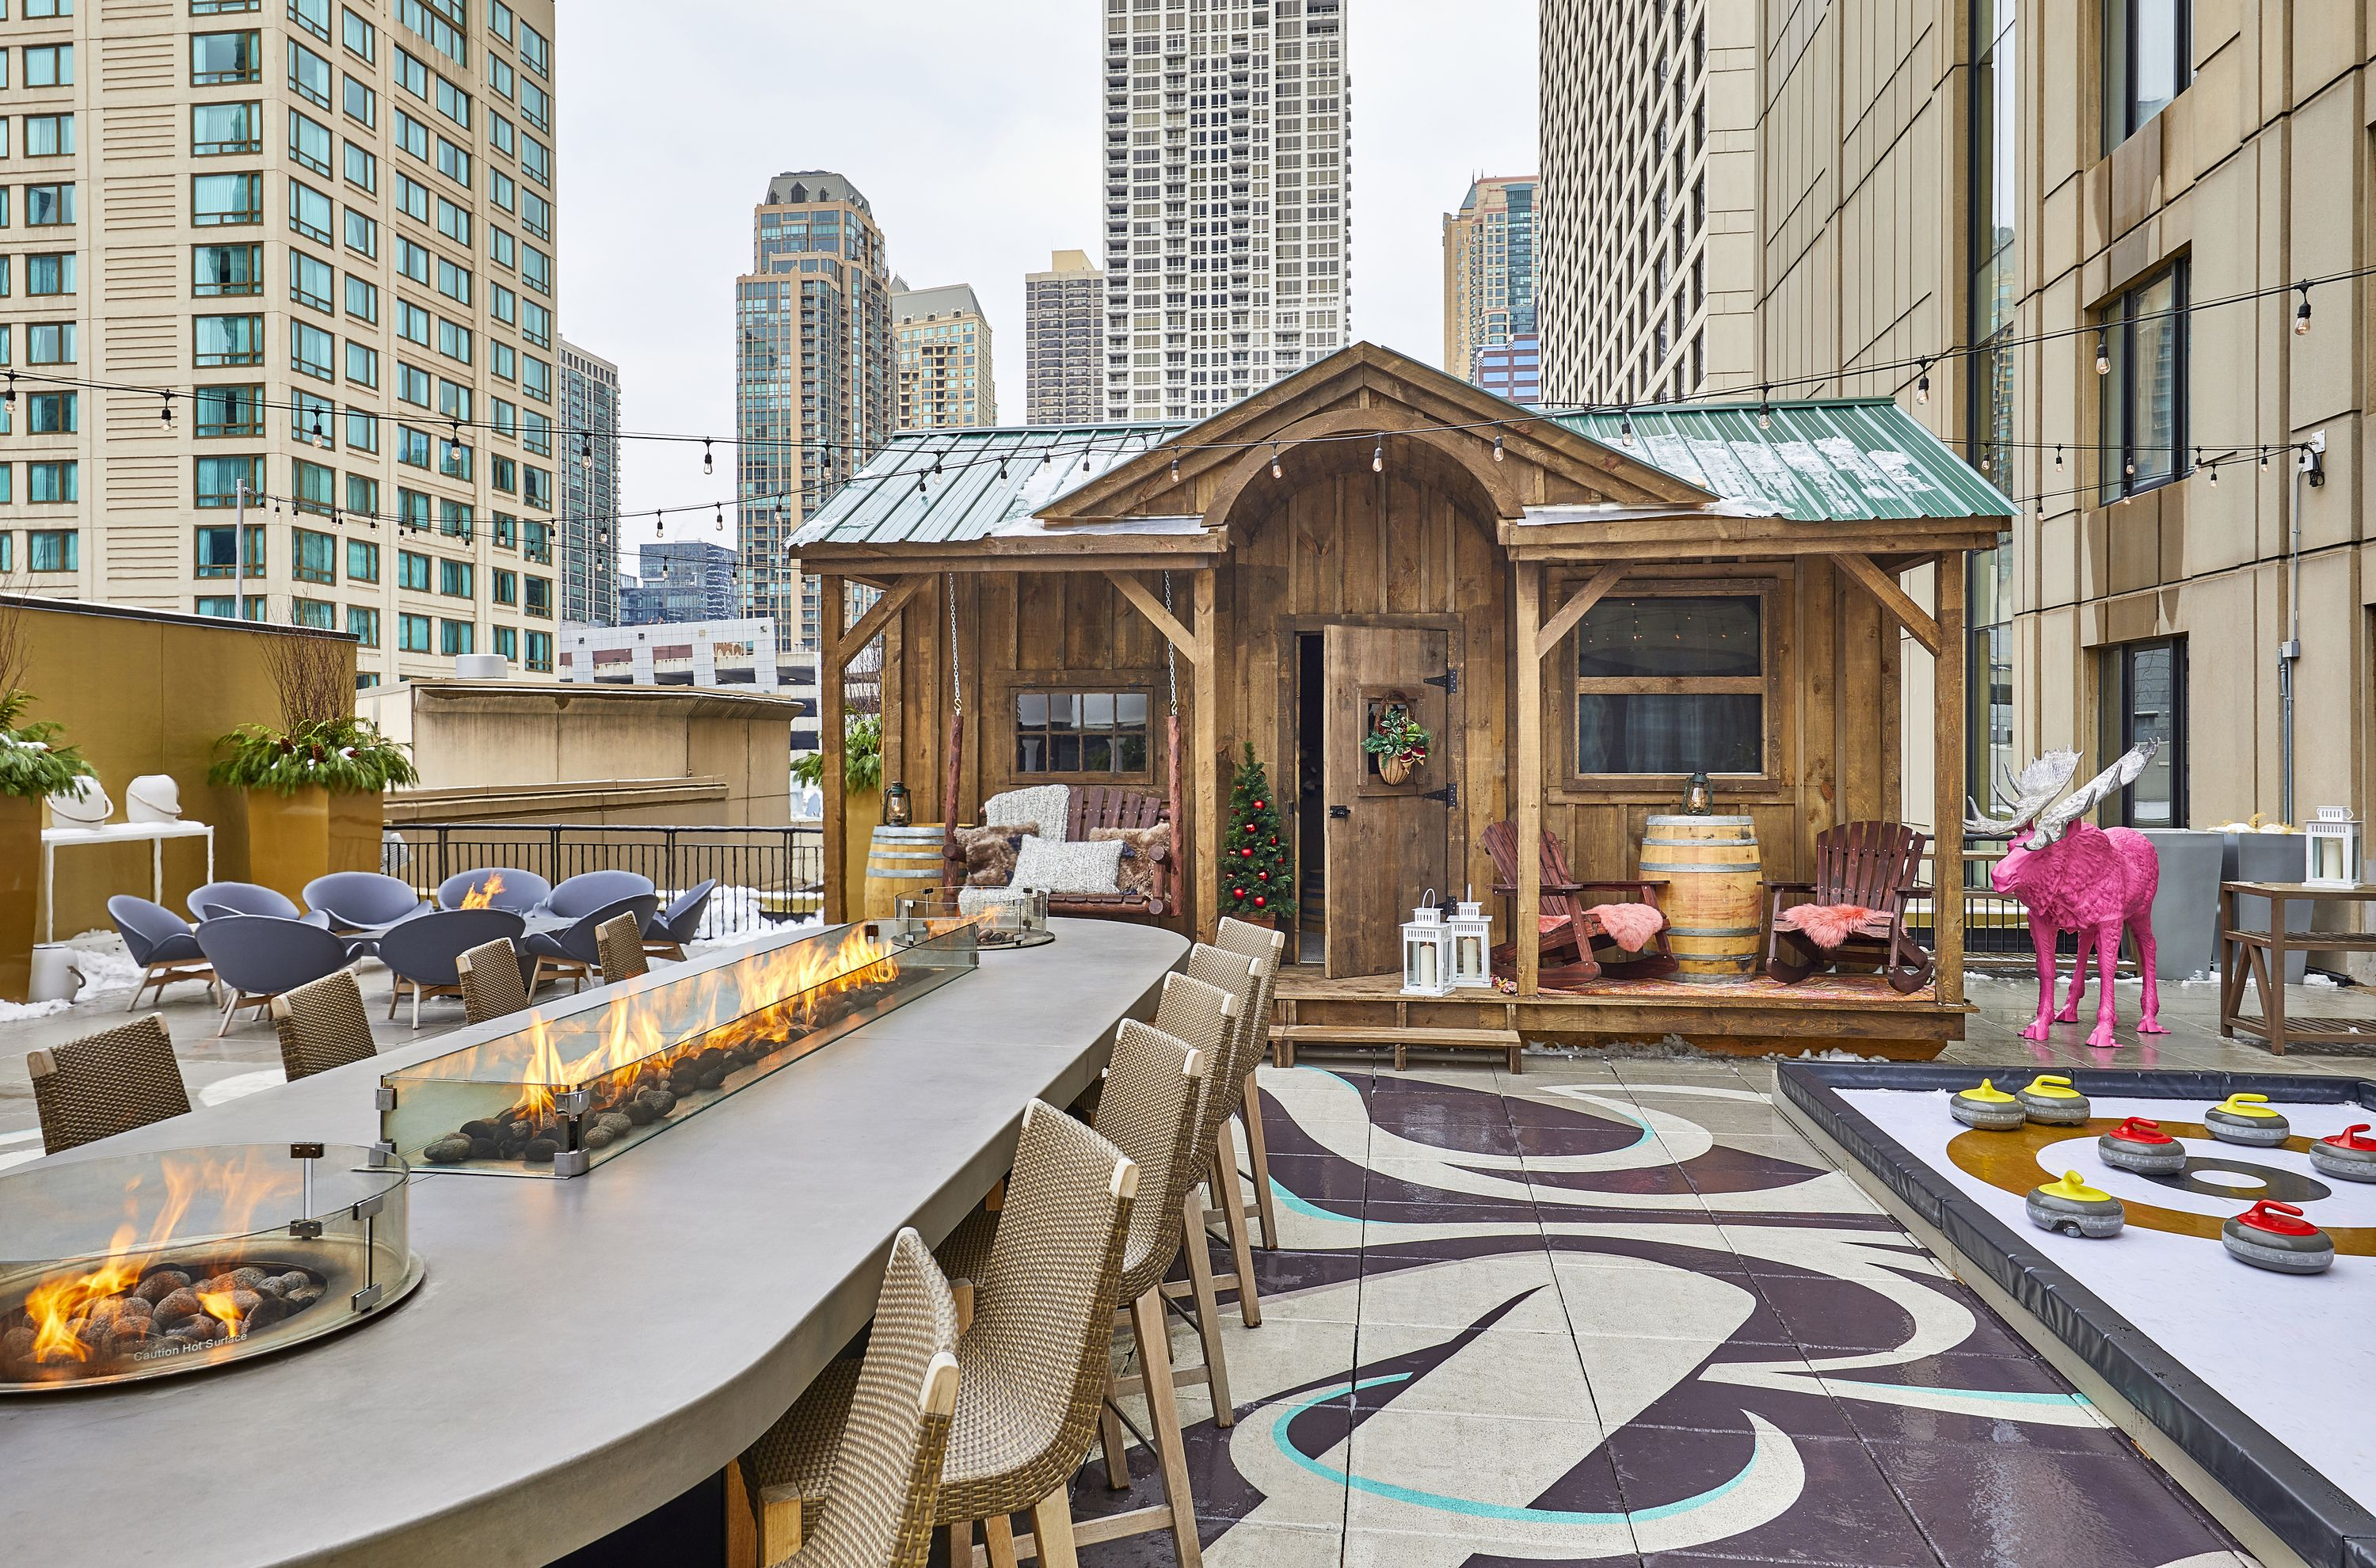 30 Chicago Bars And Restaurants With Fireplaces Chicago Bars Chicago Restaurants Rooftop